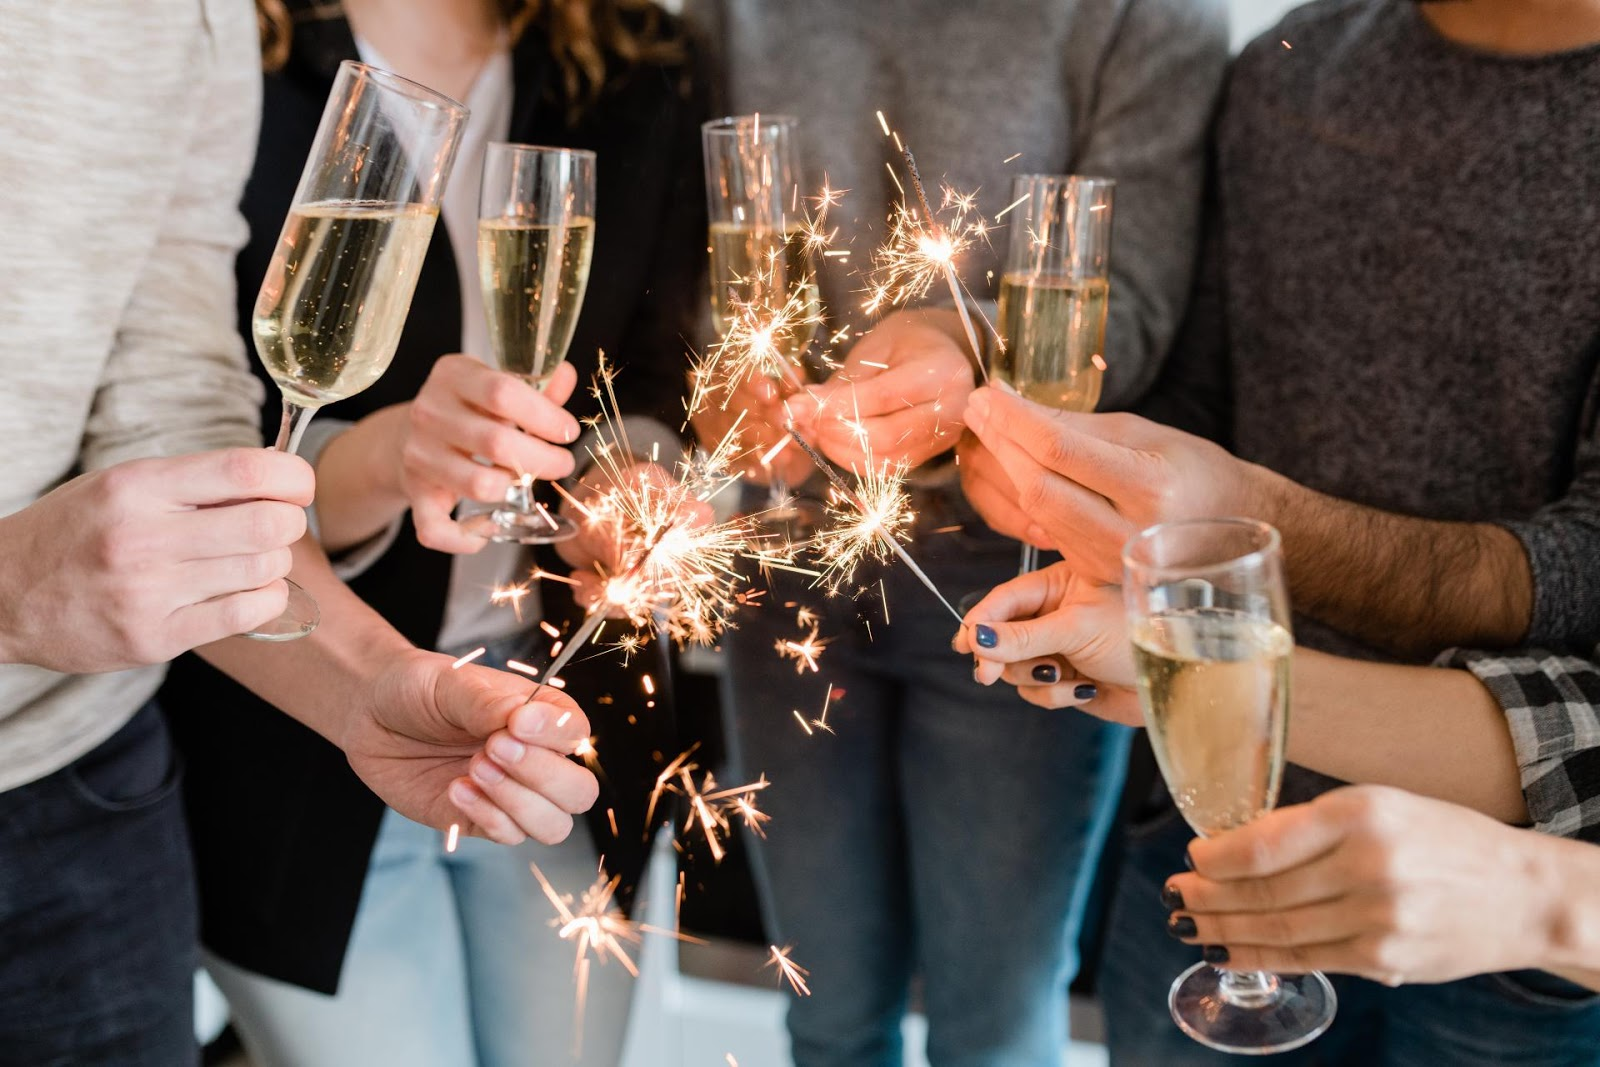 Partygoers holding champagne flutes and sparklers